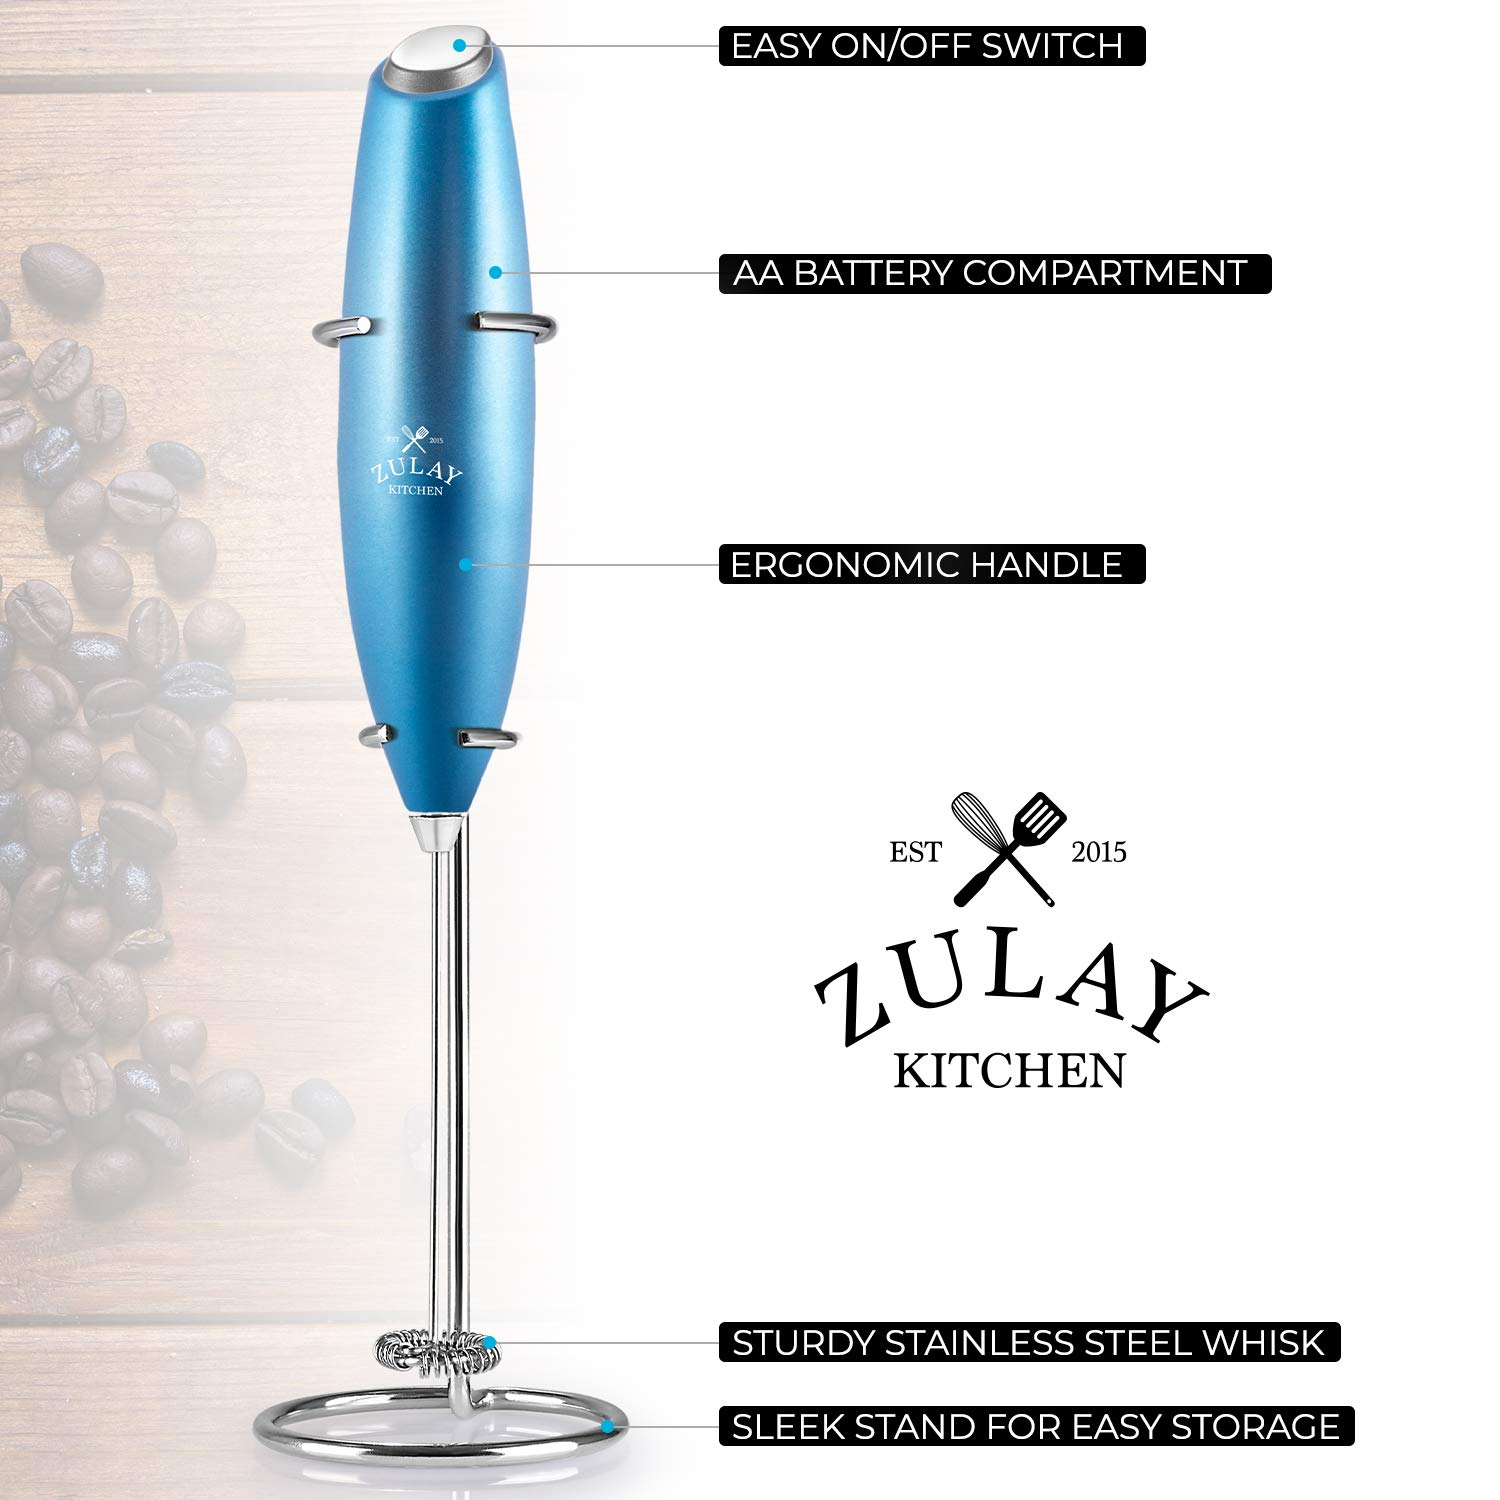 Zulay Original Milk Frother Handheld Foam Maker for Lattes  Whisk Drink Mixer for Bulletproof Coffee